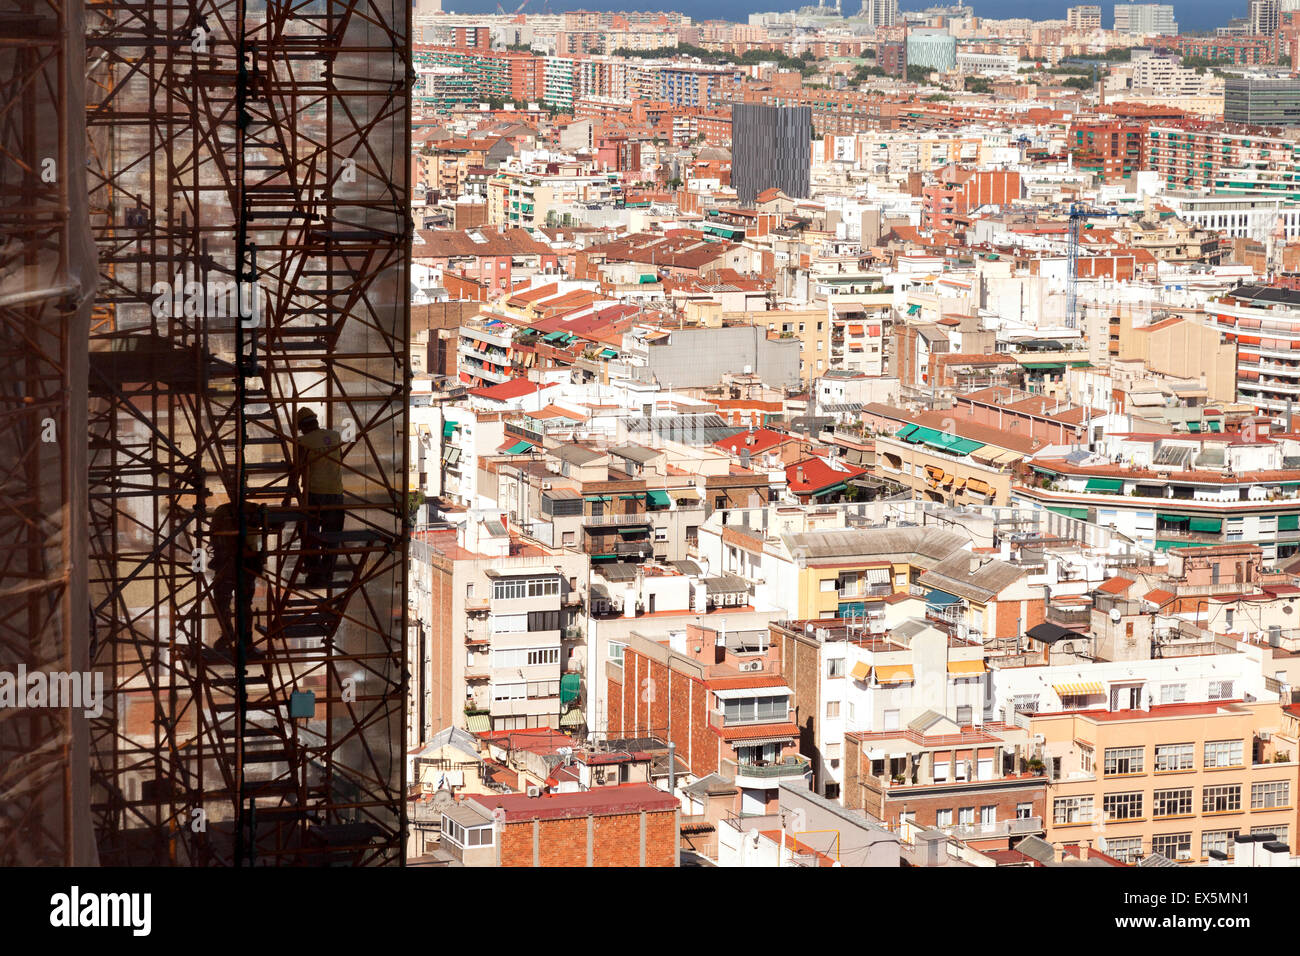 workers-on-the-towers-of-sagrada-familia